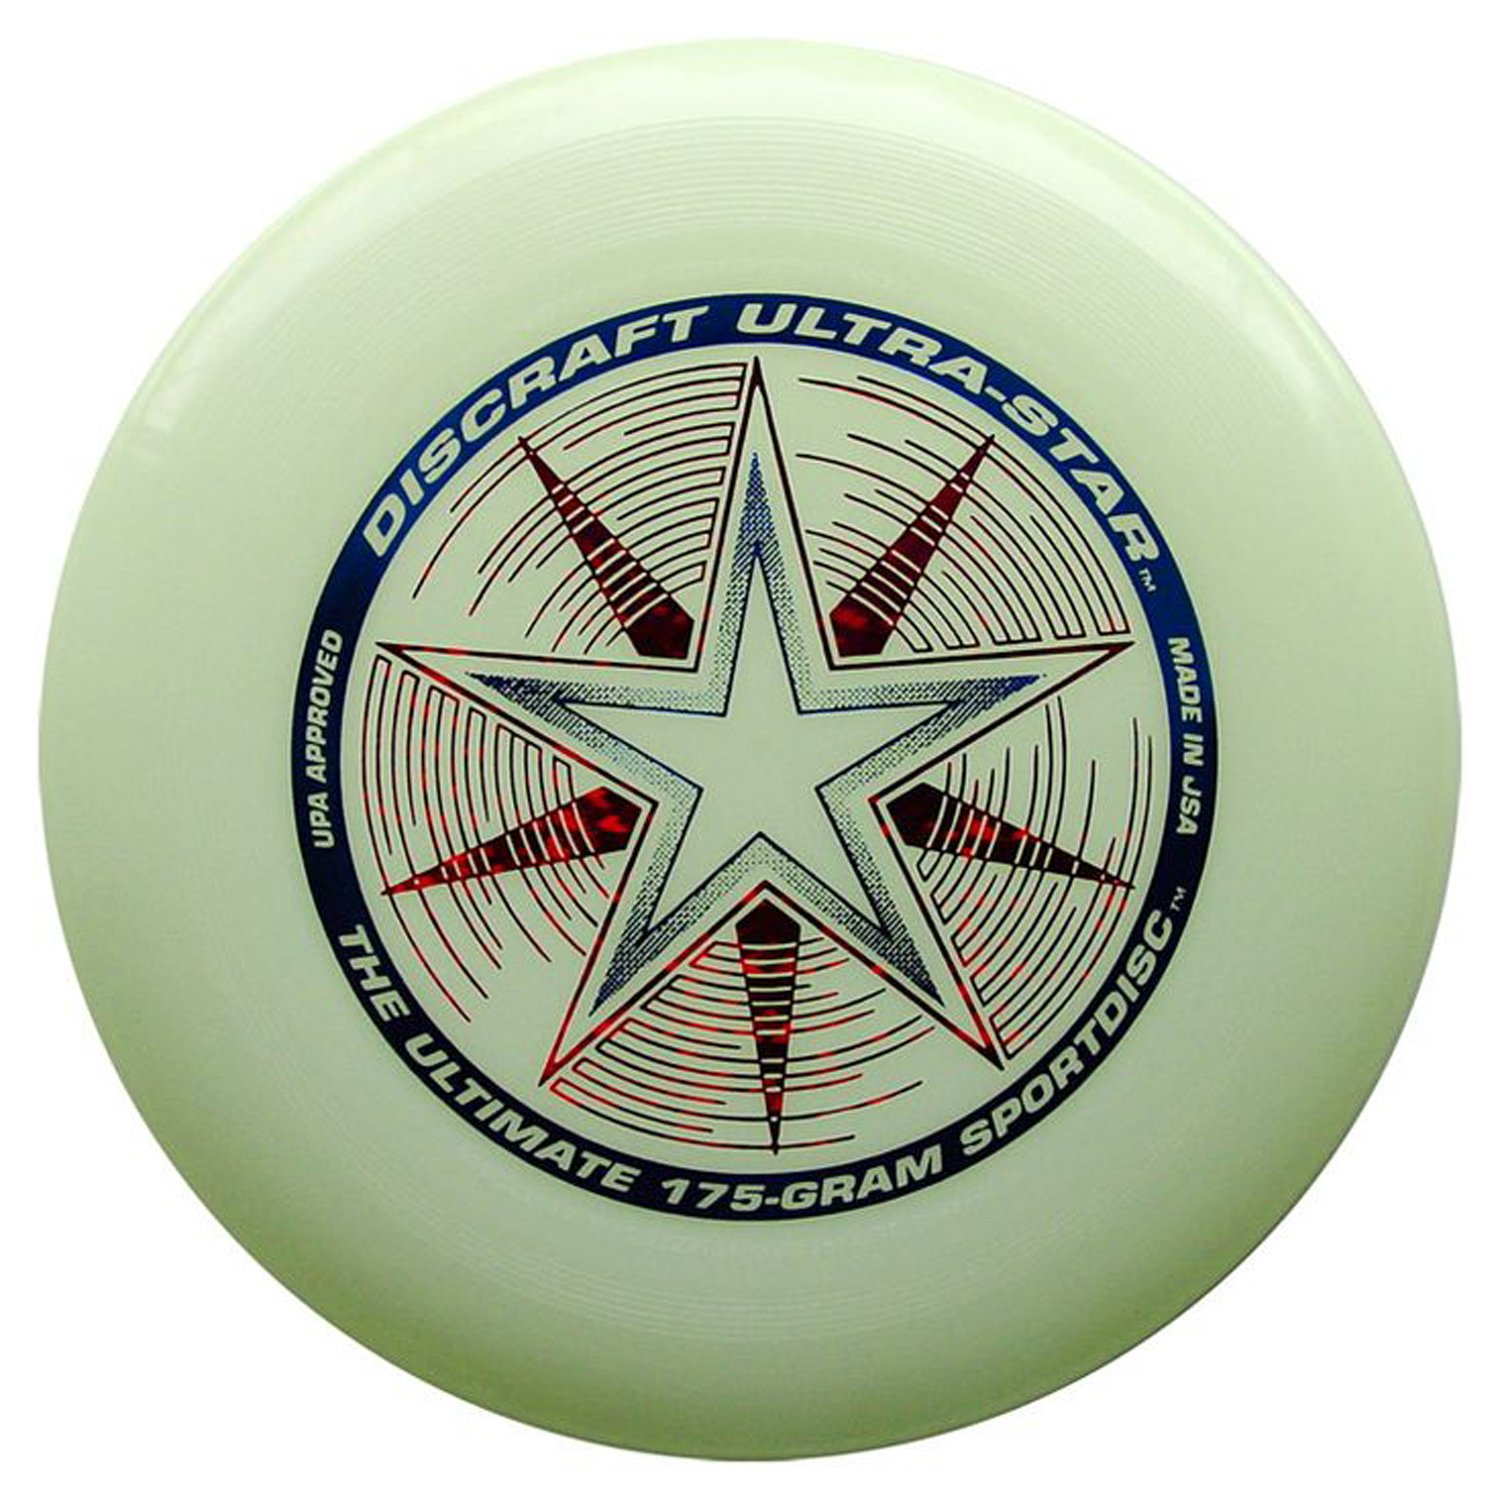 Discraft 175g Ultimate Disc Bundle (3 Discs) Black, Yellow & Glow by Discraft (Image #4)